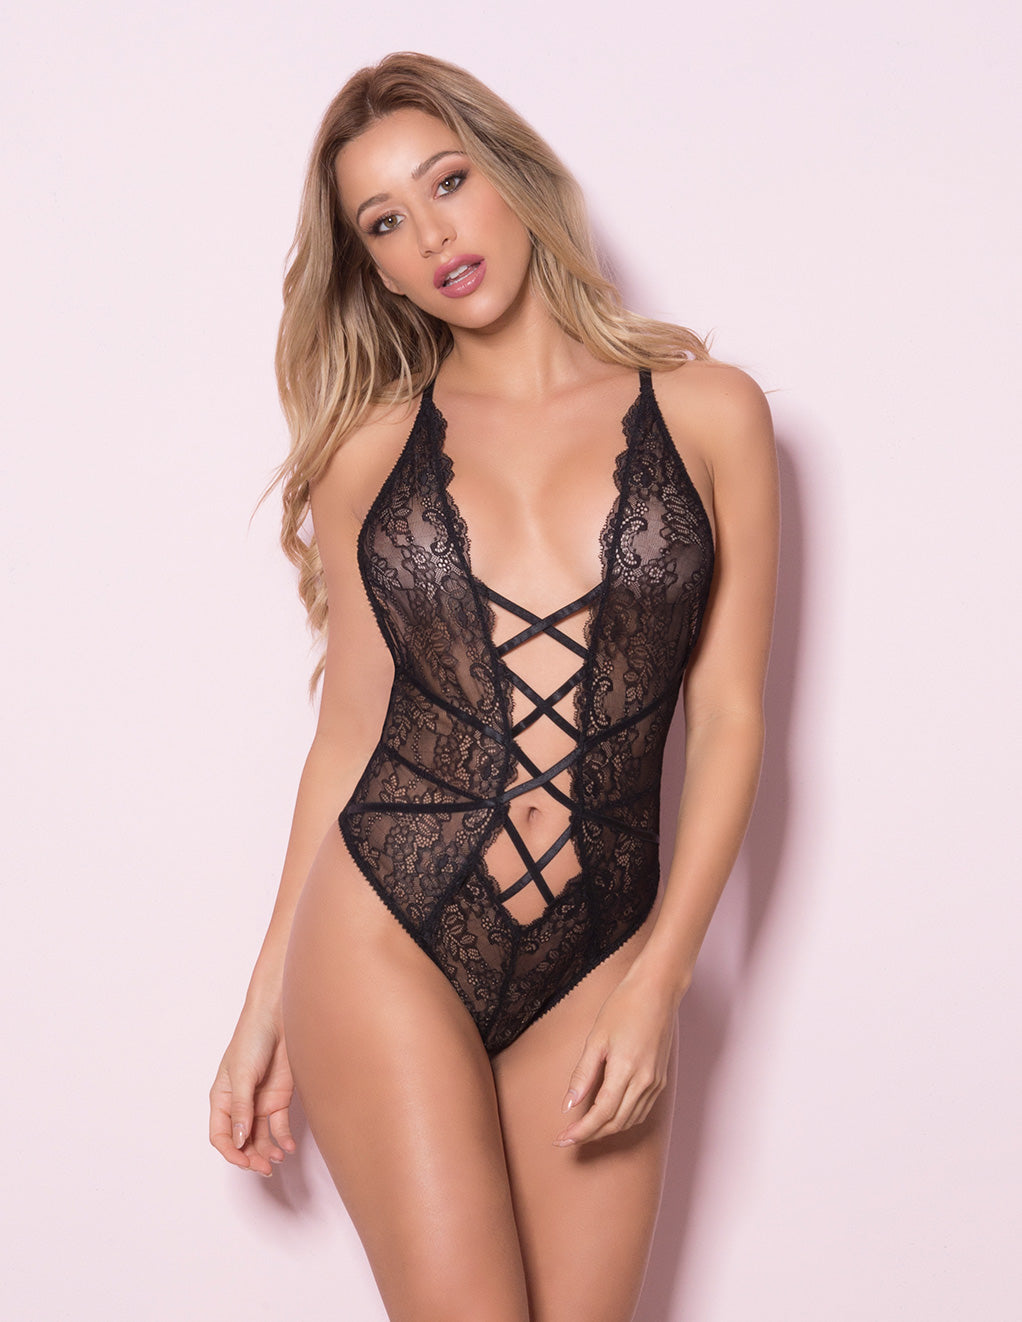 Lace Teddy with Lace Up Front Details by Oh La La Cheri Black Front